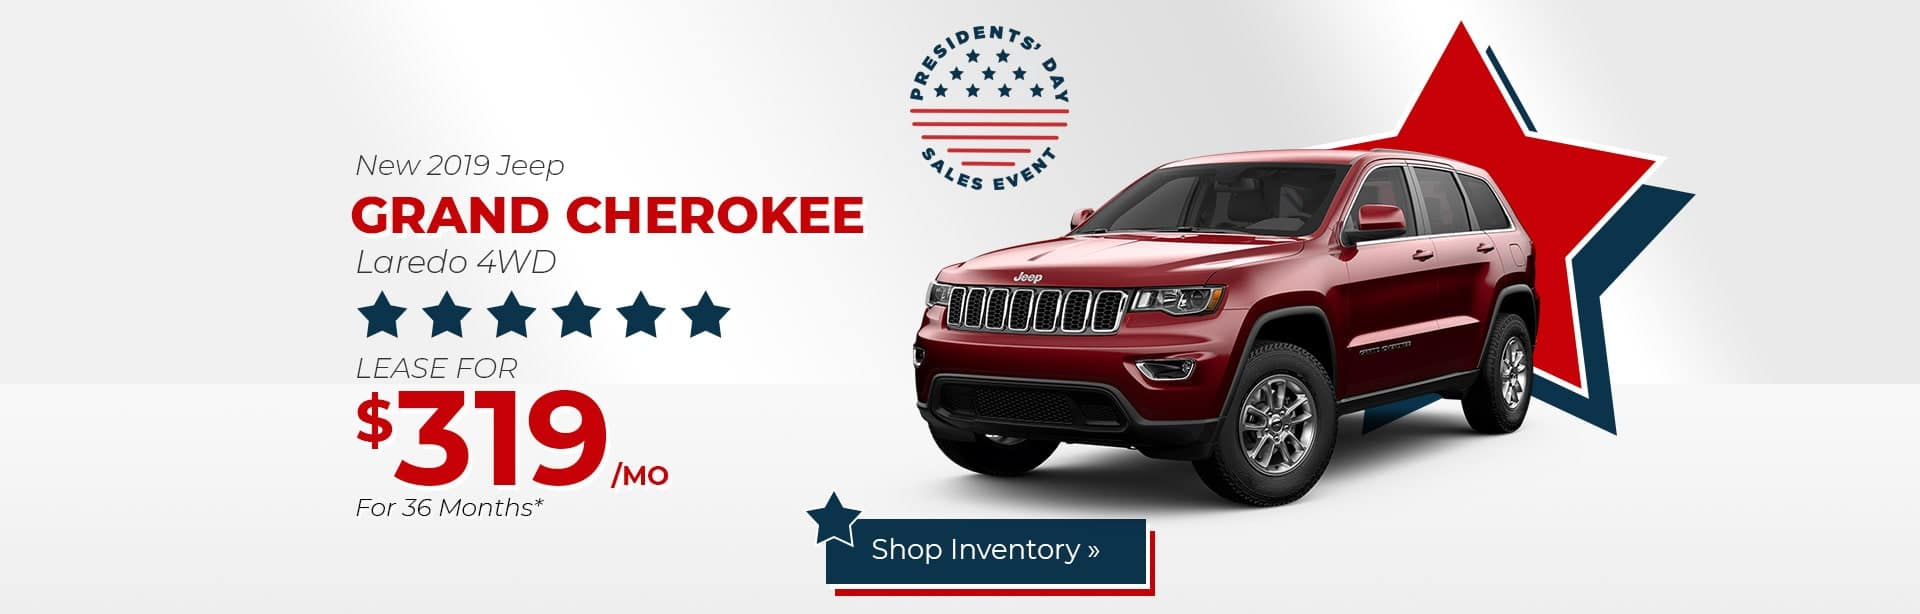 Jeep Grand Cherokee Lease Deal near Lafayette, Indiana.